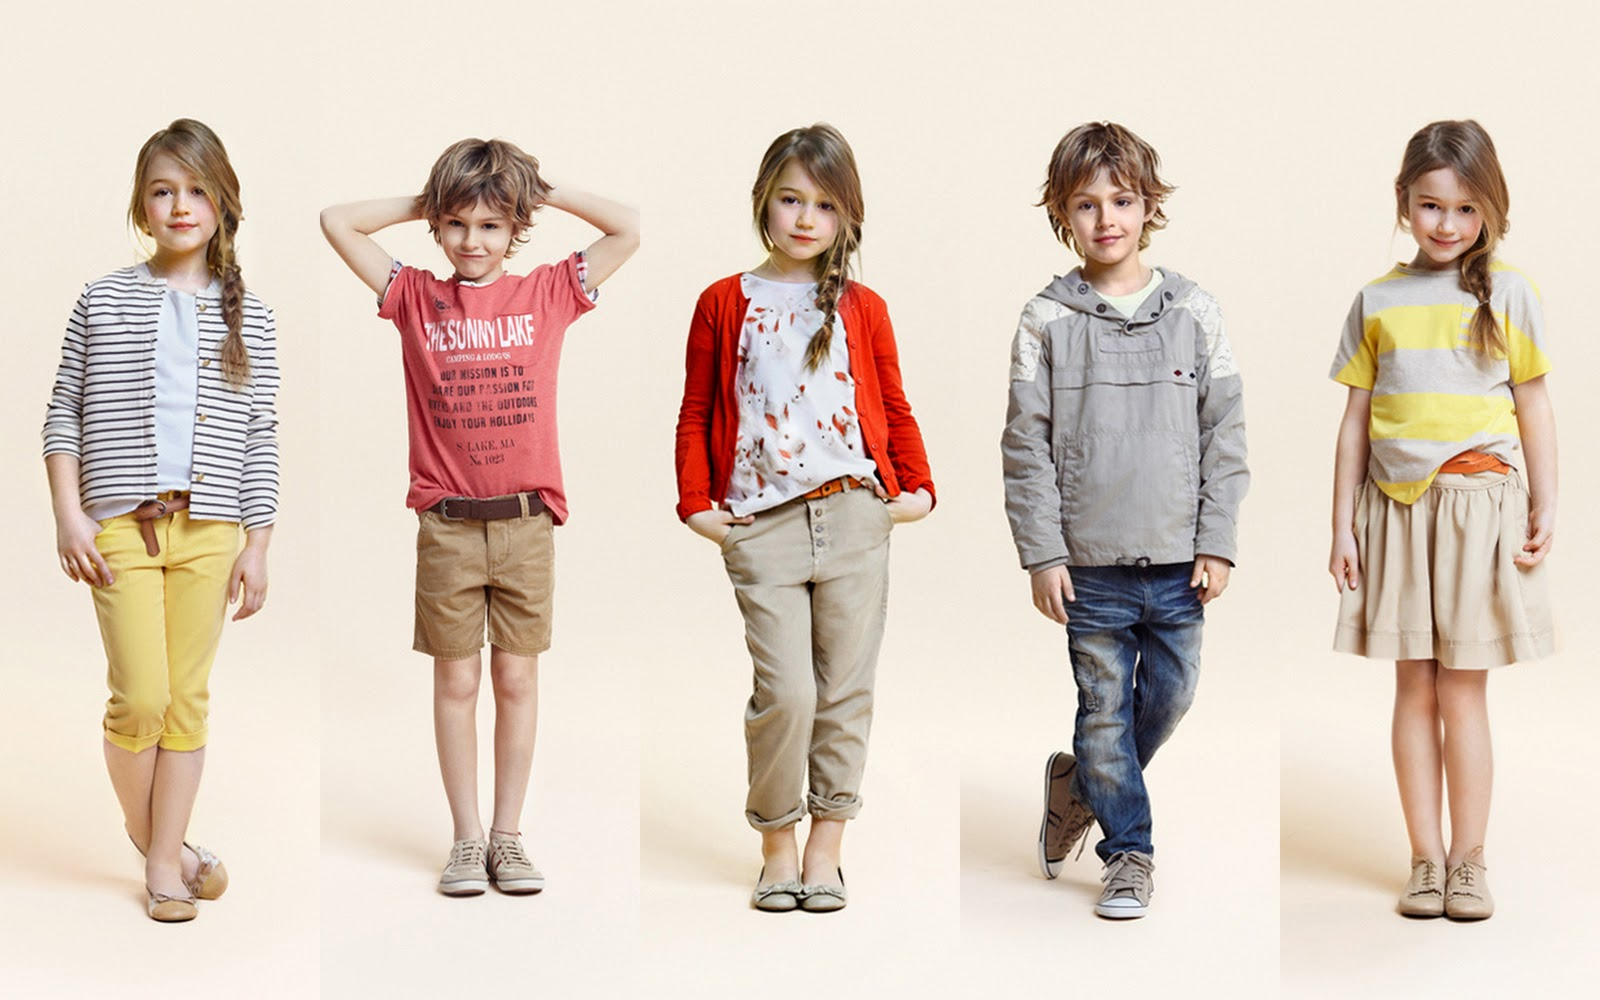 With Wearhop you can rent stylish outfits from brands like babyGAP, Janie and Jack, Ralph Lauren, and mini Boden for six months at a time.